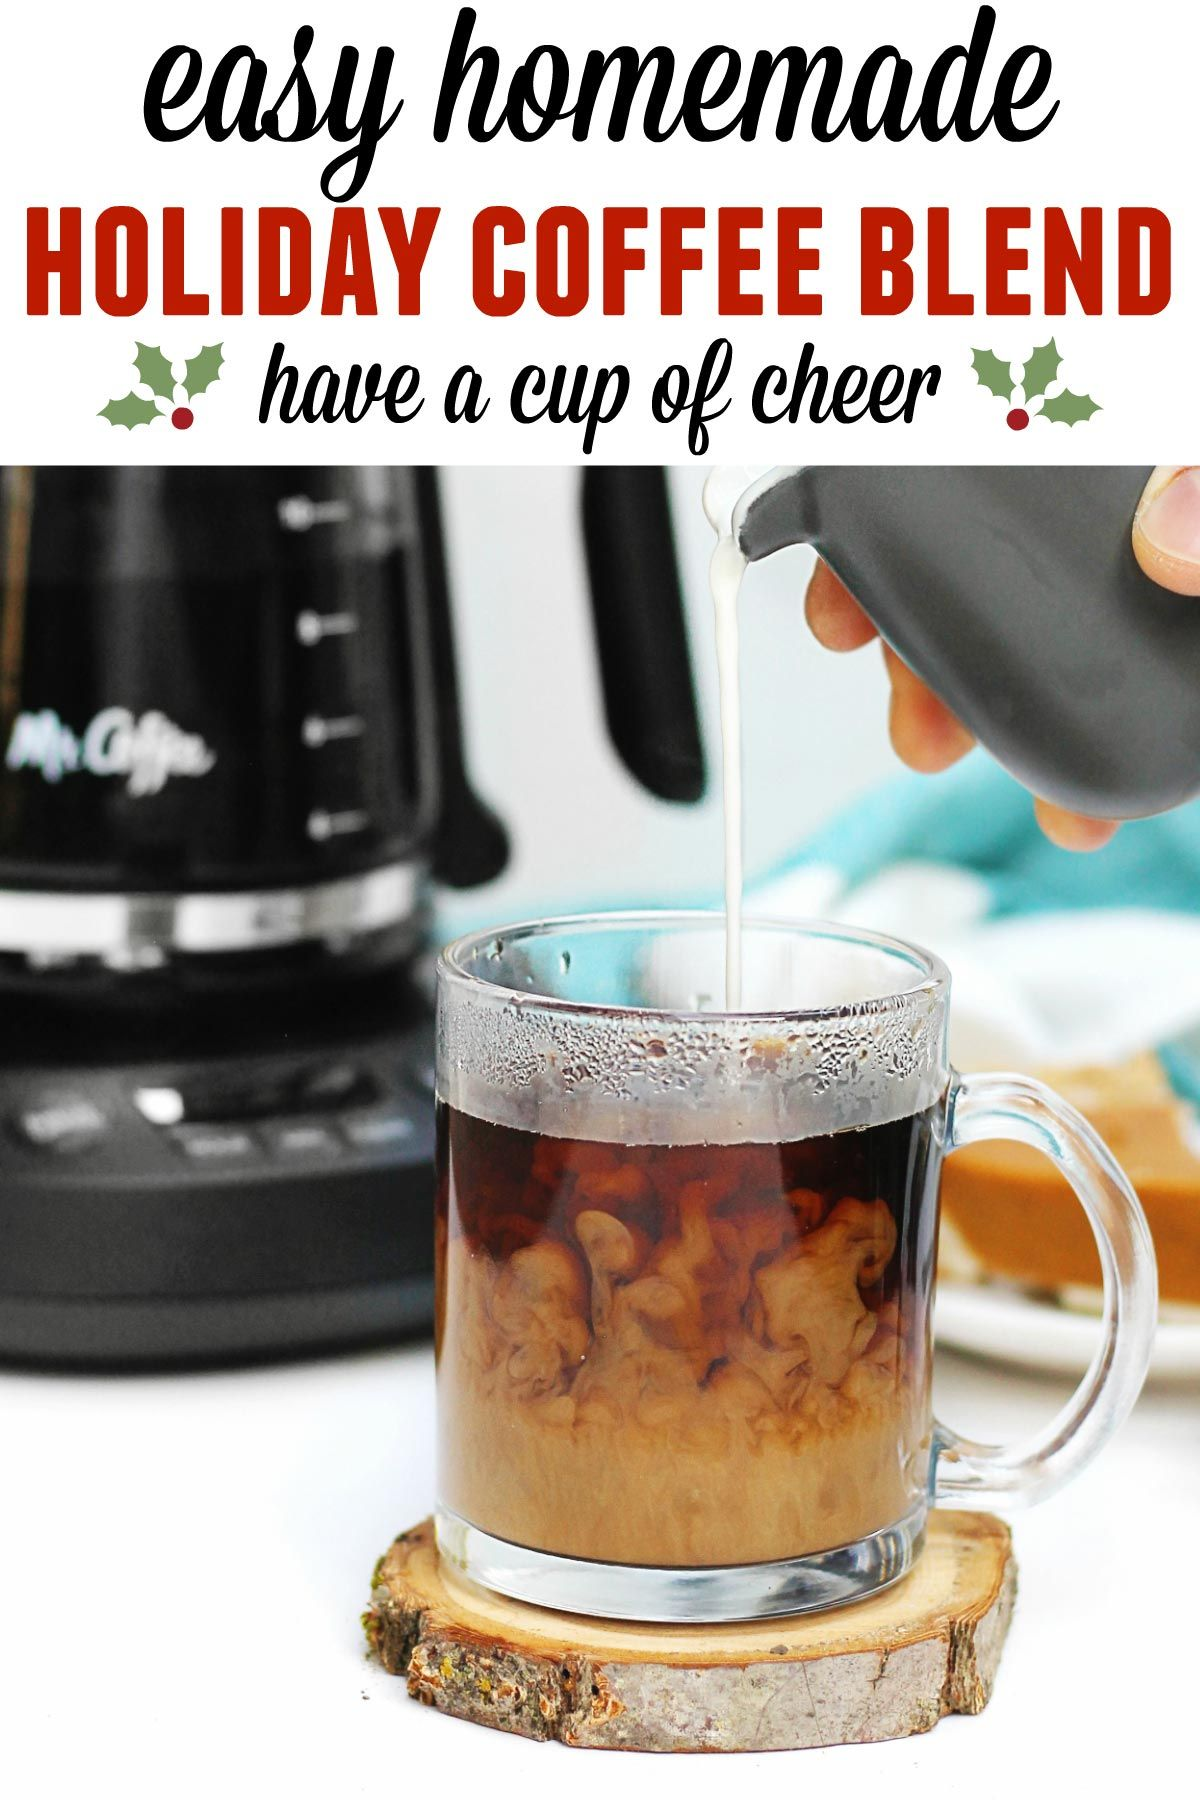 Homemade holiday coffee blend Recipe Blended coffee